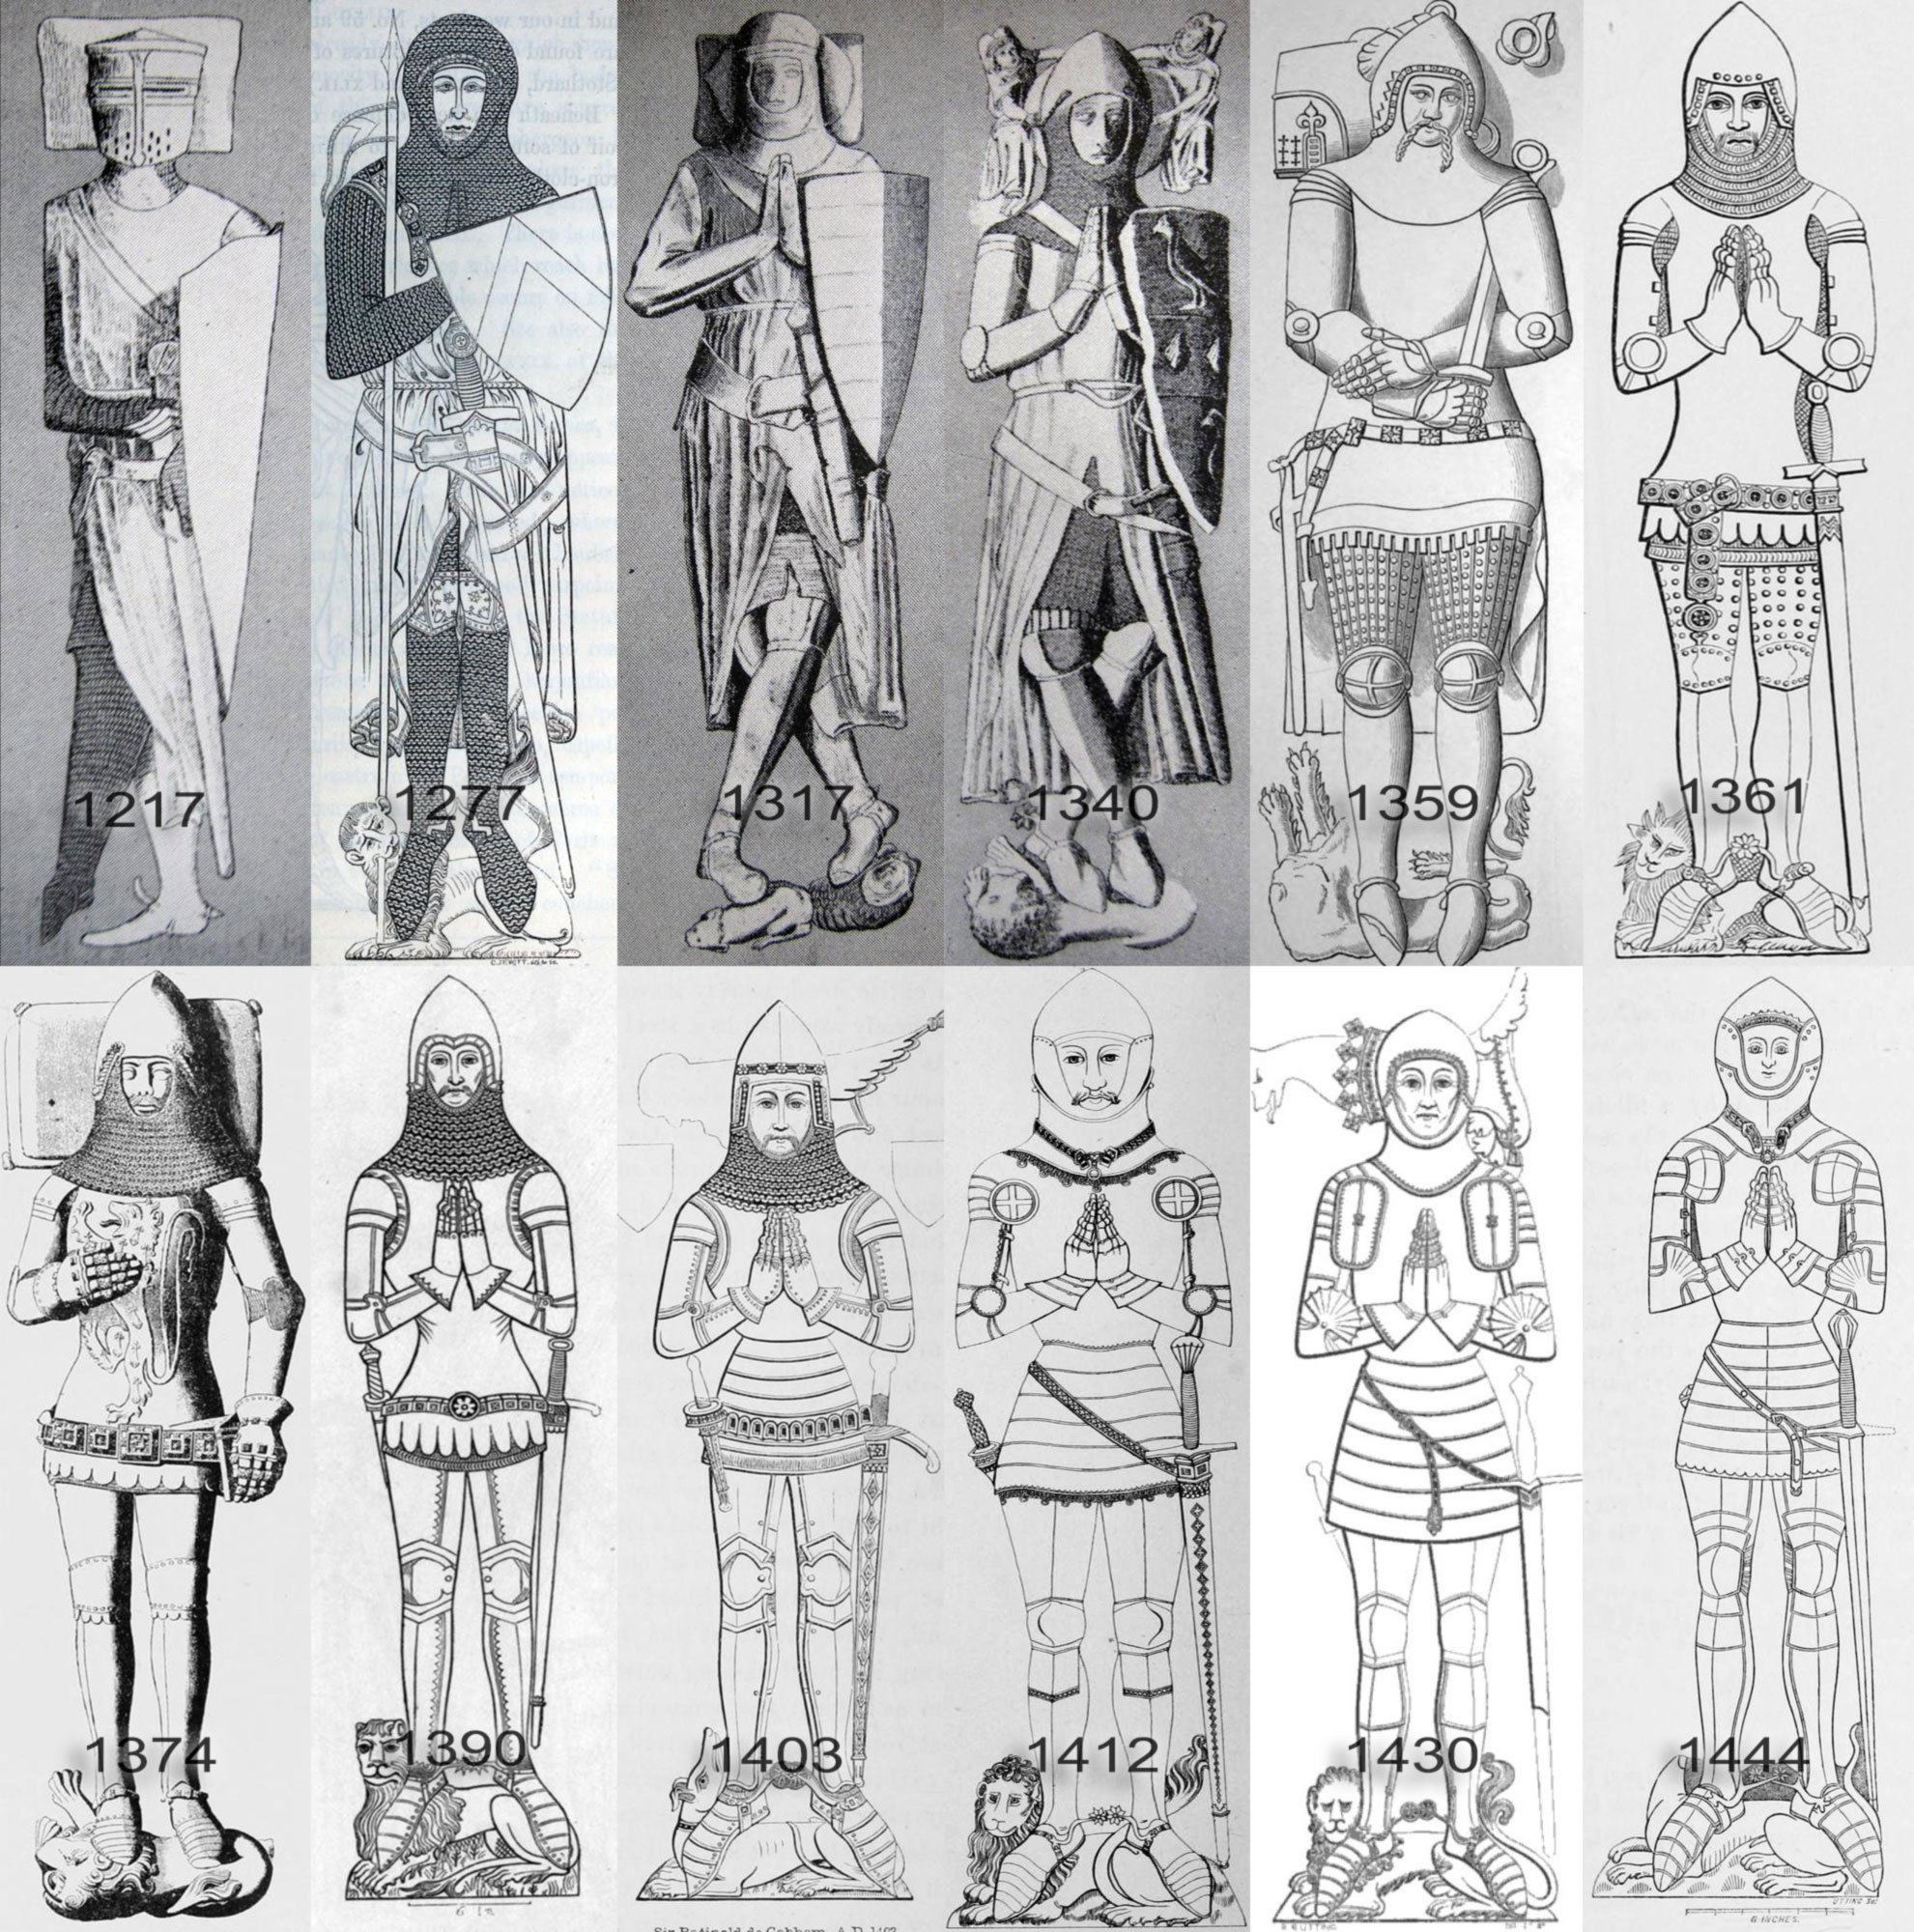 analysis of 15th century midwife guide Delivery guide h105/h505 theme: exploration and discovery december 2014 genoese maritime empires, the determination and risks which european individuals took in the 15th century to discover source analysis inevitably.